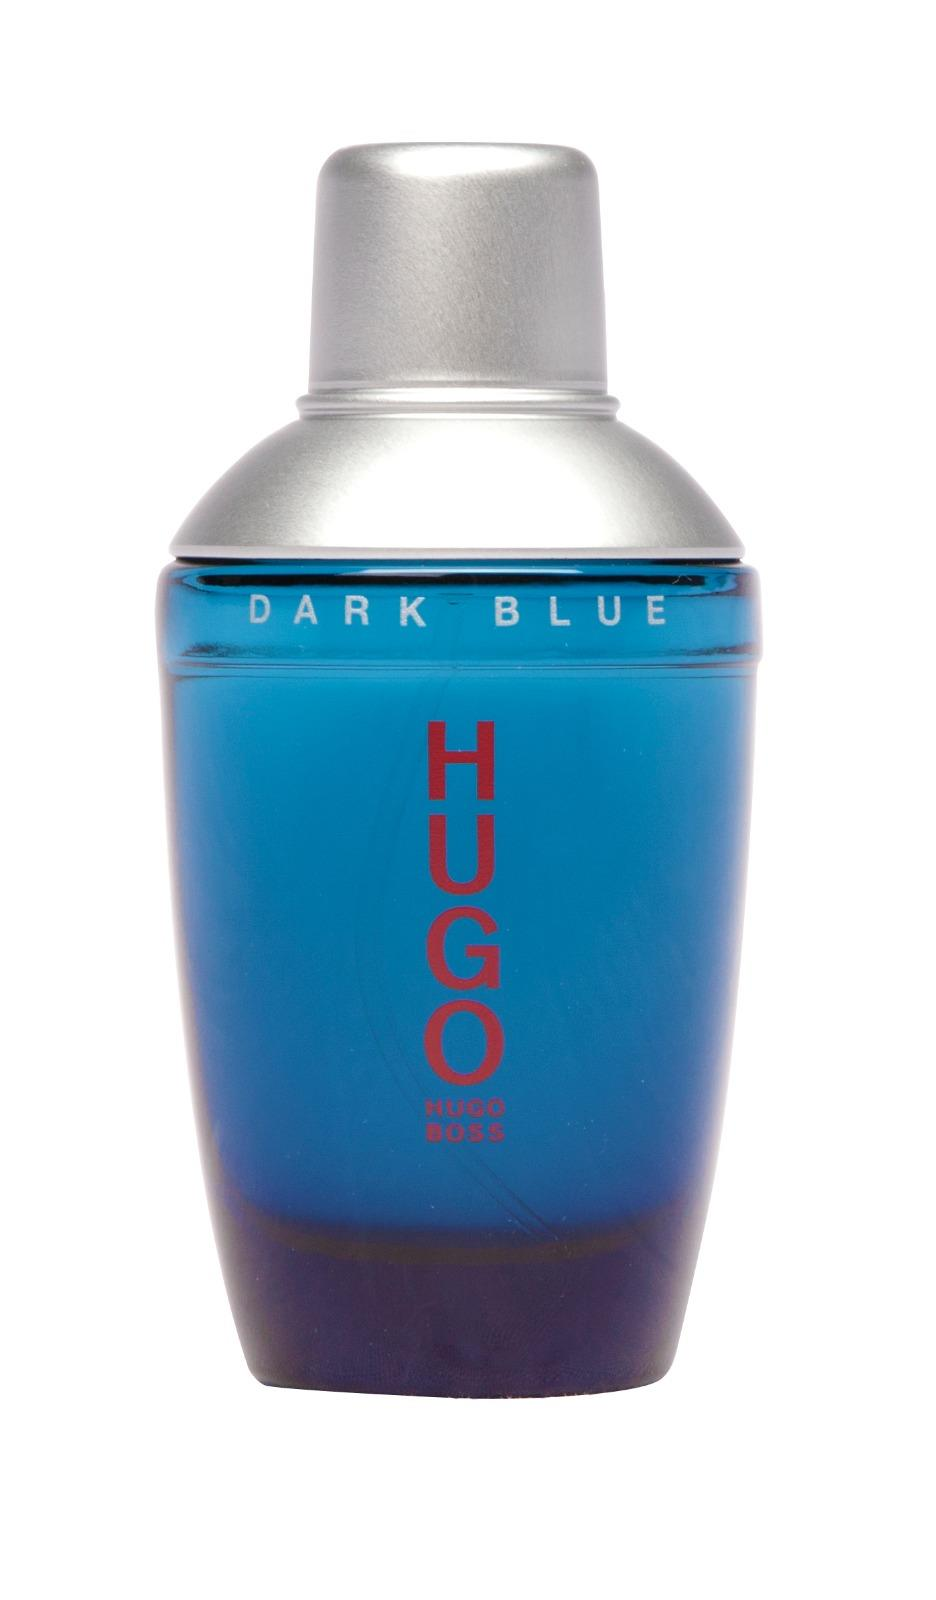 ***ORIGINAL PERFUME*** HUGO BOSS DARK BLUE 75ML #NO BOX